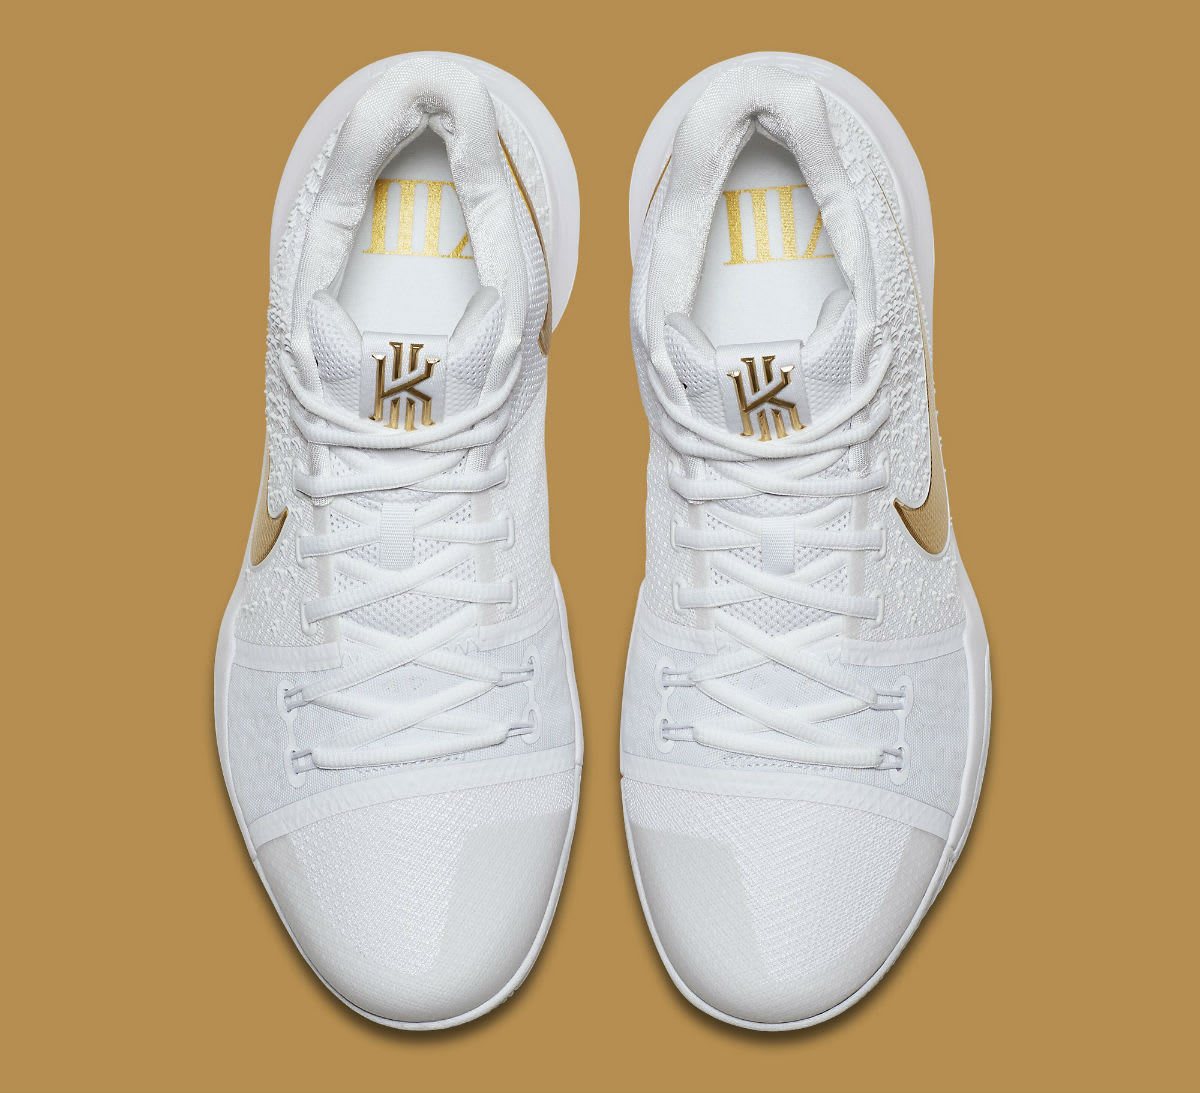 Nike Kyrie 3 White/Gold Release Date Top 852396-902